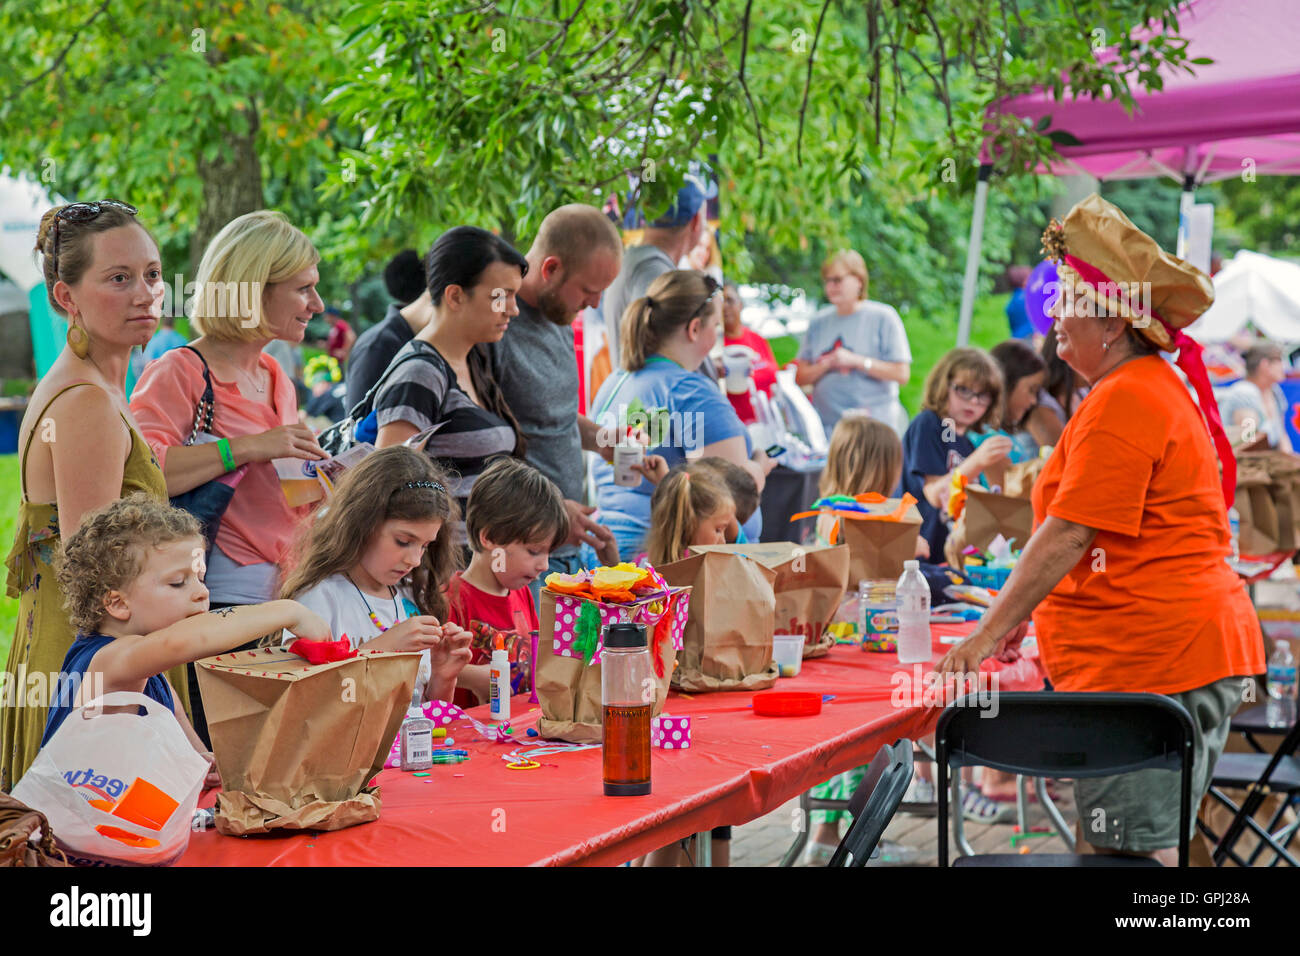 Fort Wayne, Indiana - Children make decorated paper hats at the Taste of the Arts Festival. - Stock Image